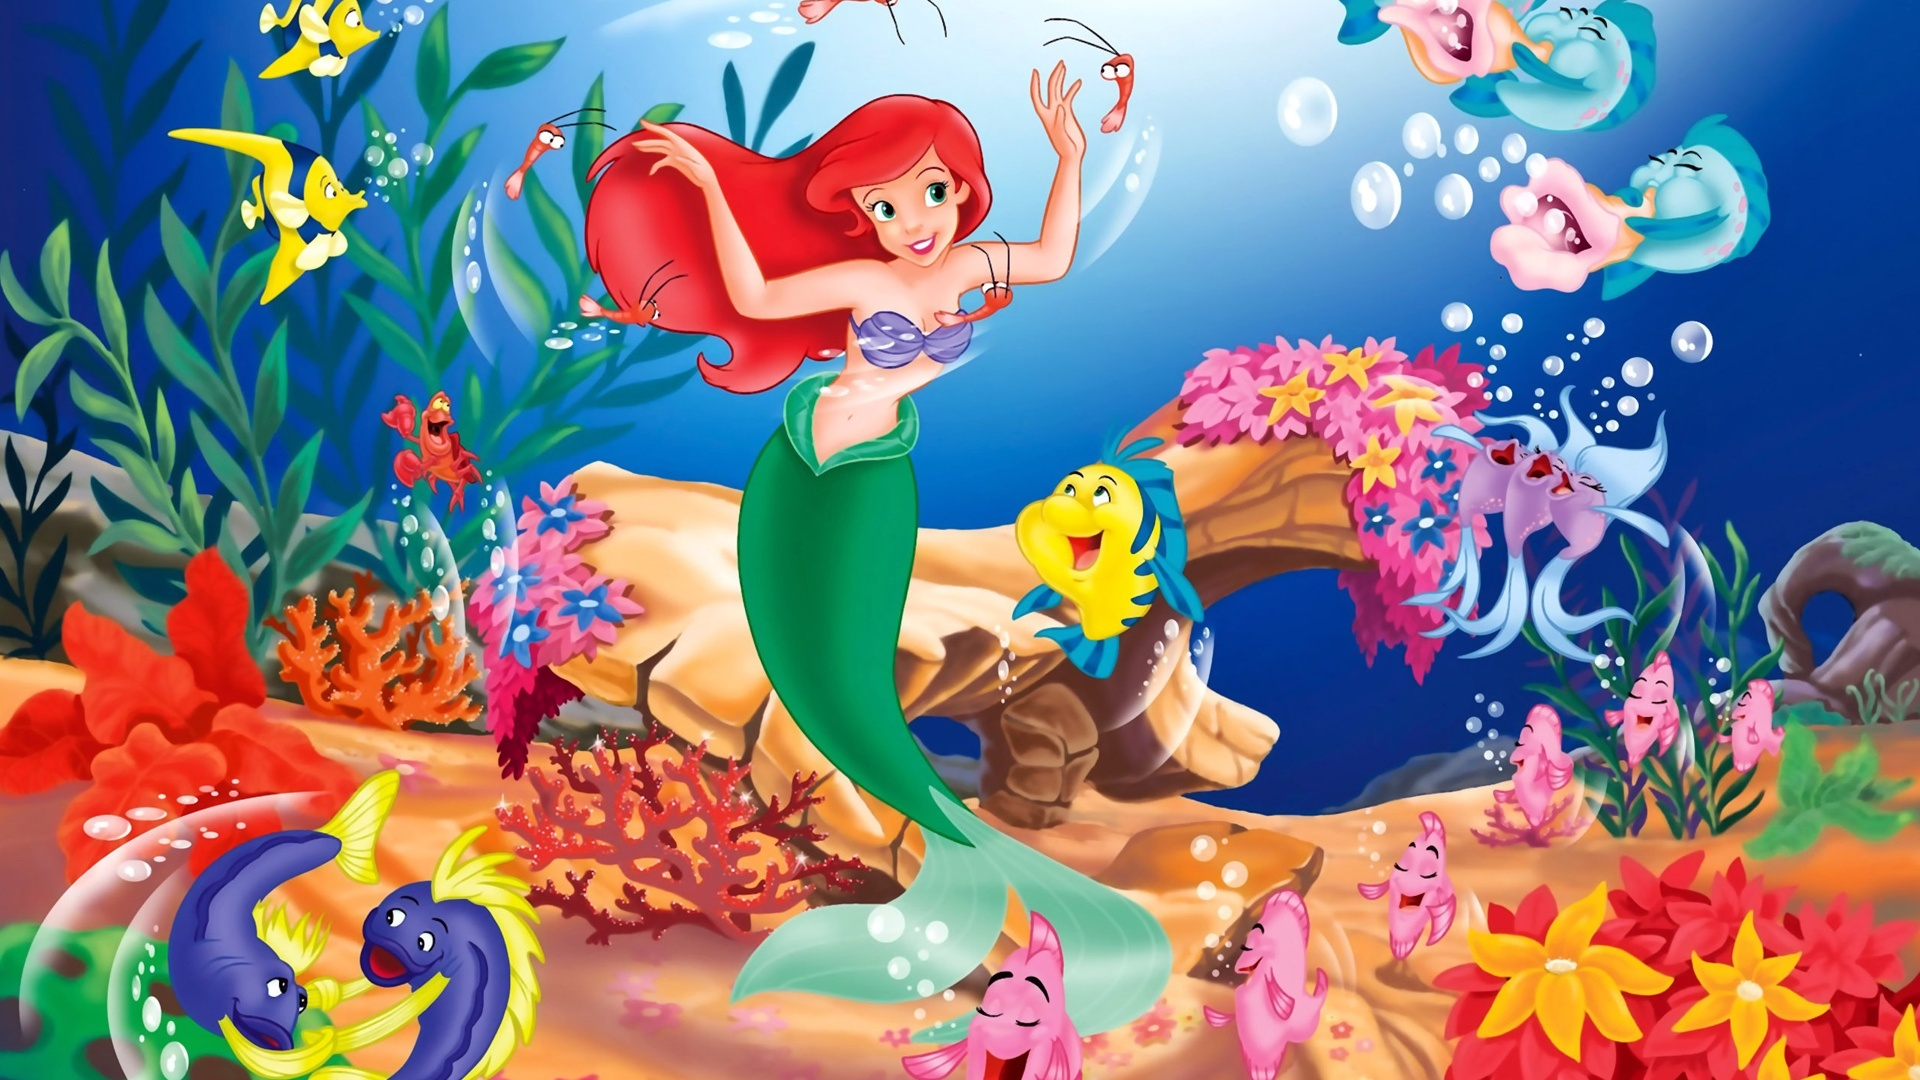 wallpapersthe little mermaid wallpapers hd 1920 1080 hd desktop 1920x1080